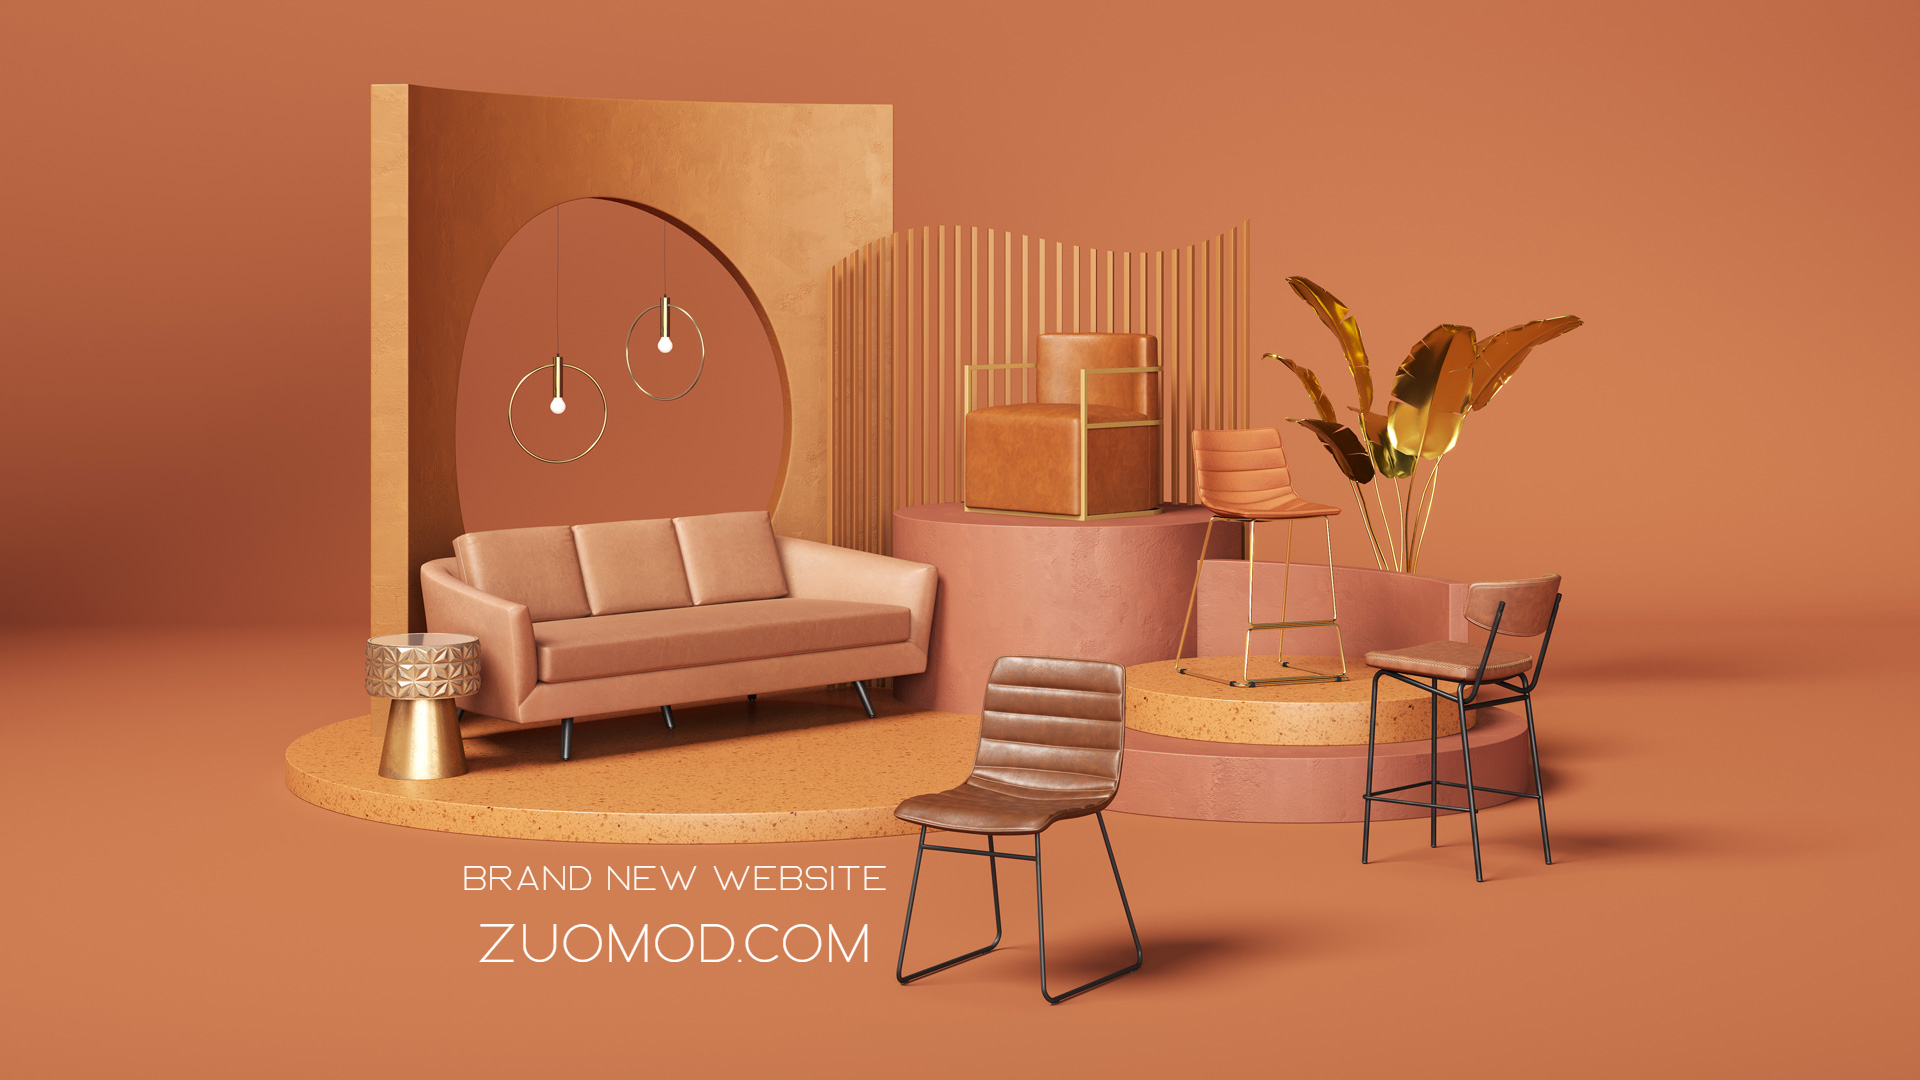 Zuo launches upgraded website featuring real-time inventory status, robust search capabilities, enhanced navigational tools